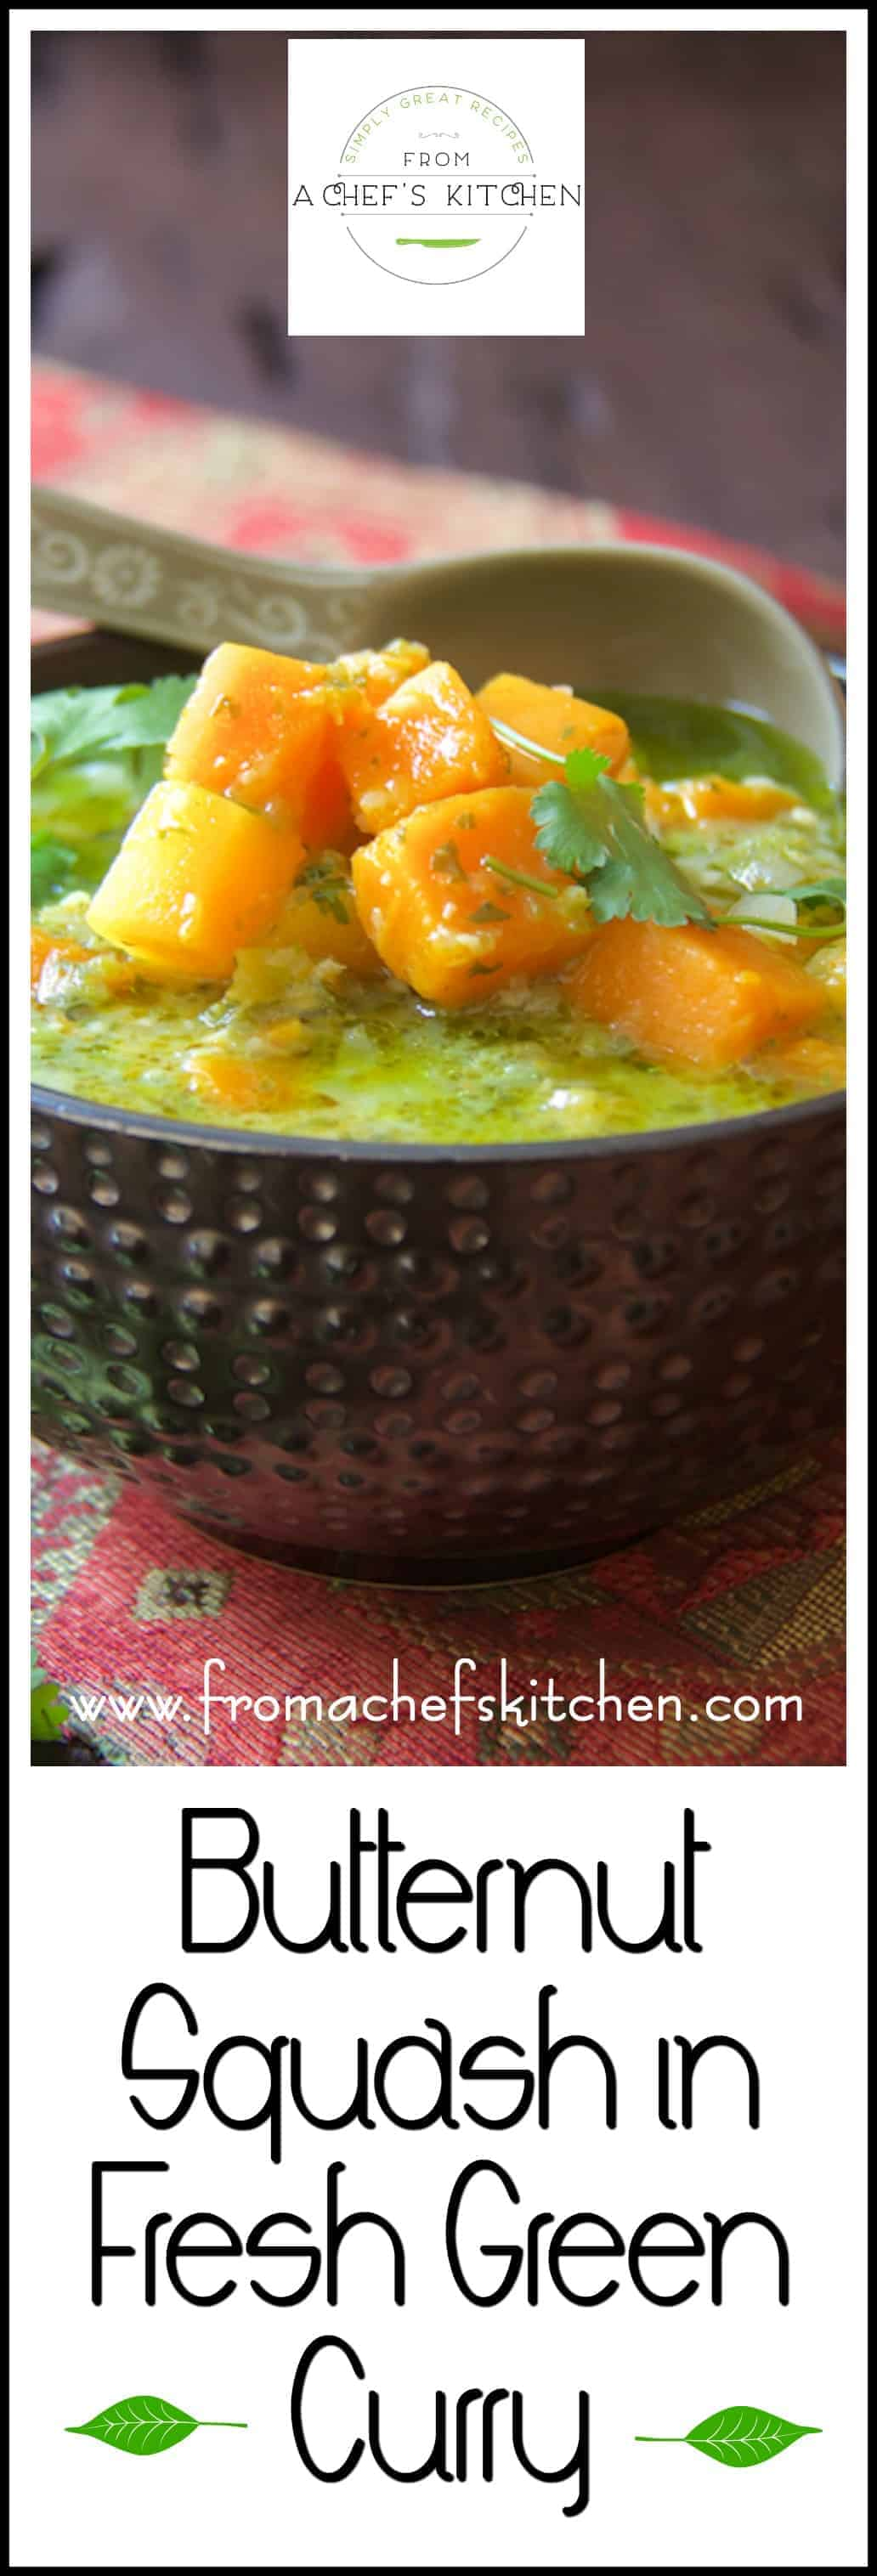 Butternut squash in fresh green curry from a chef 39 s kitchen for Fresh chef kitchen